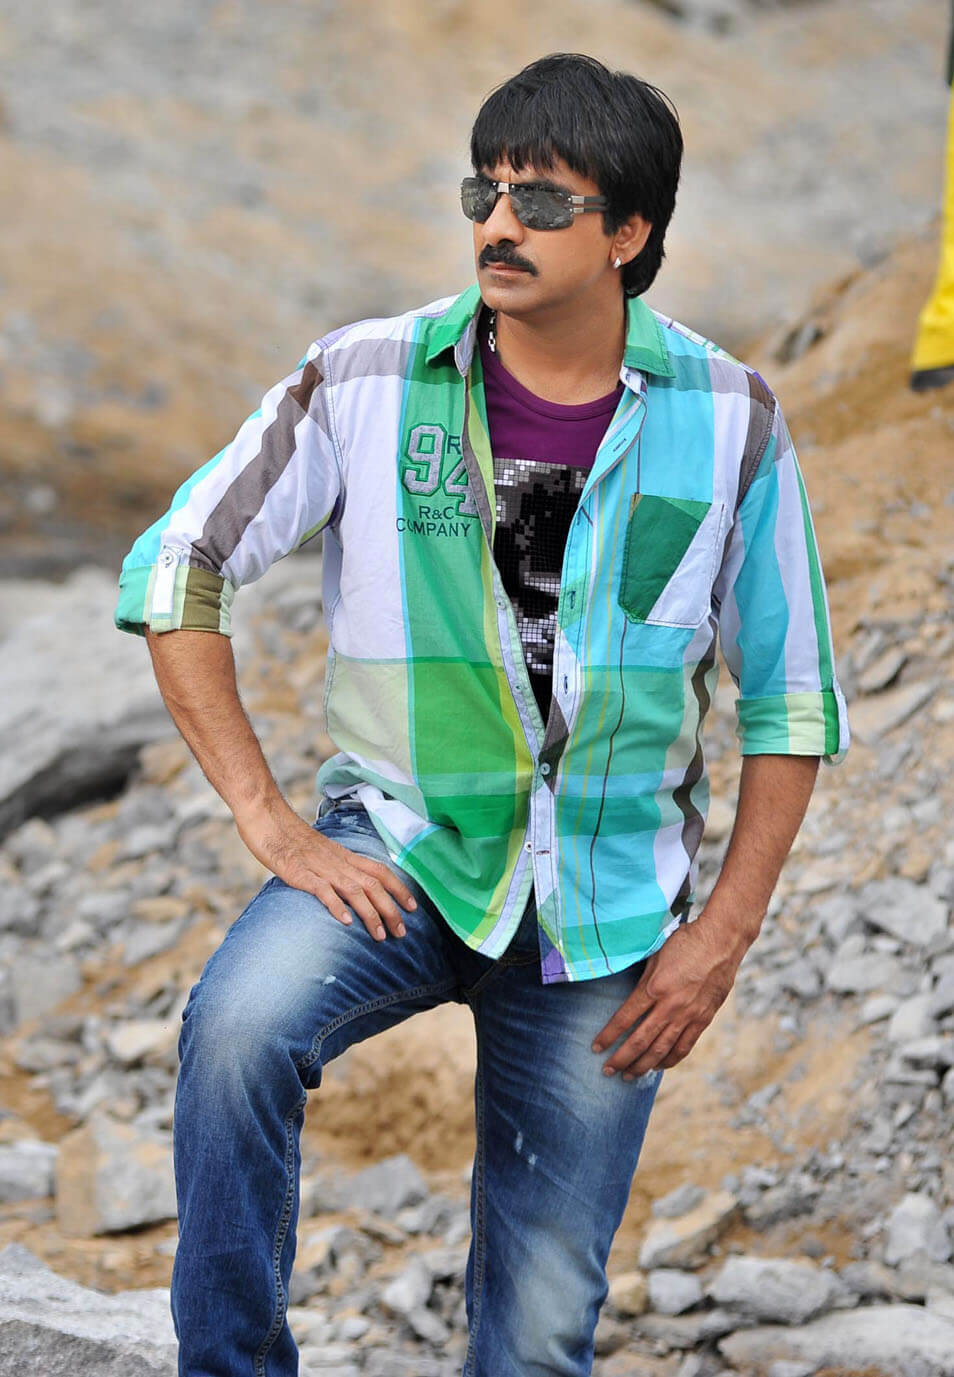 Ravi Teja Movie, Photos(images), Date Of Birth, Family, Brother, Height, Biography, Net Worth, Age, Wife, Details, Education, Instagram, Twitter, Wiki, Imdb, Facebook, Hairstyle, Youtube (39)